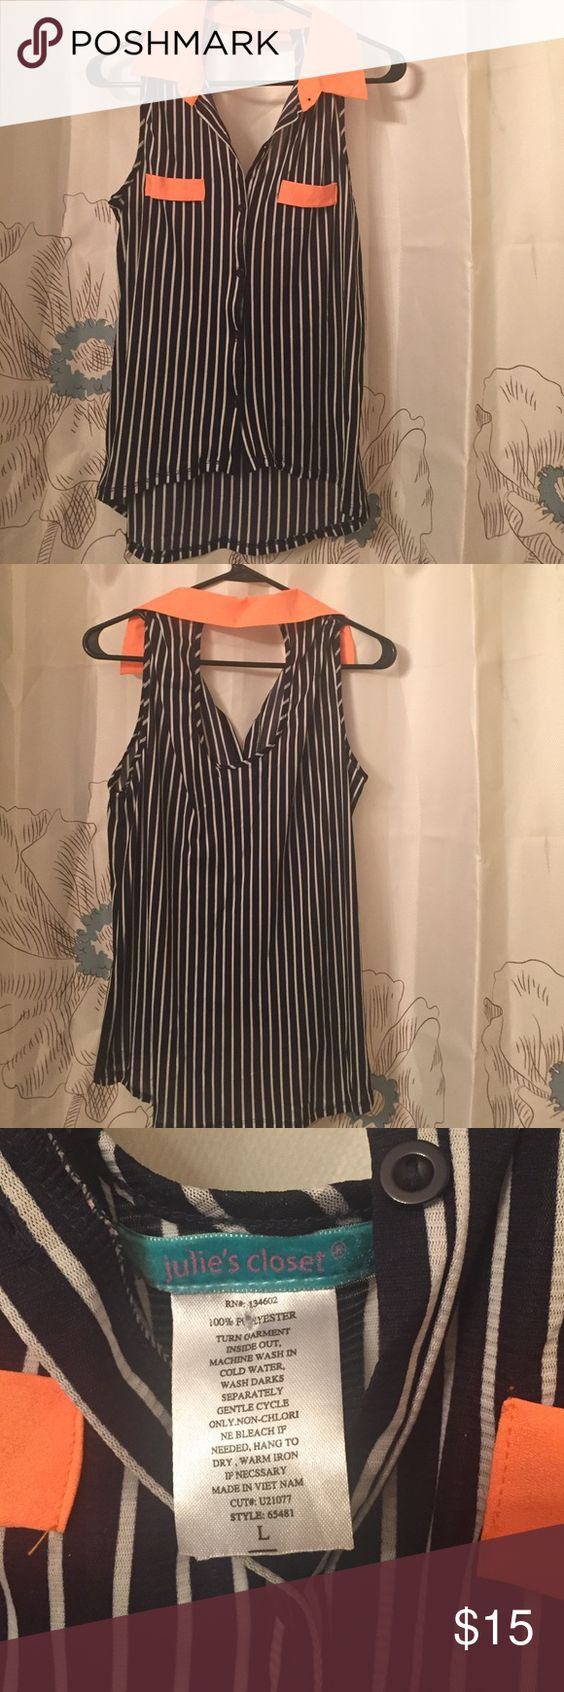 Orange Collared Pin Stripped Button Up Tank Blue, White stripes, Orange Collar, Cut out back, Button Up front, Julie's Closet, Large Julie's Closet Tops Tank Tops